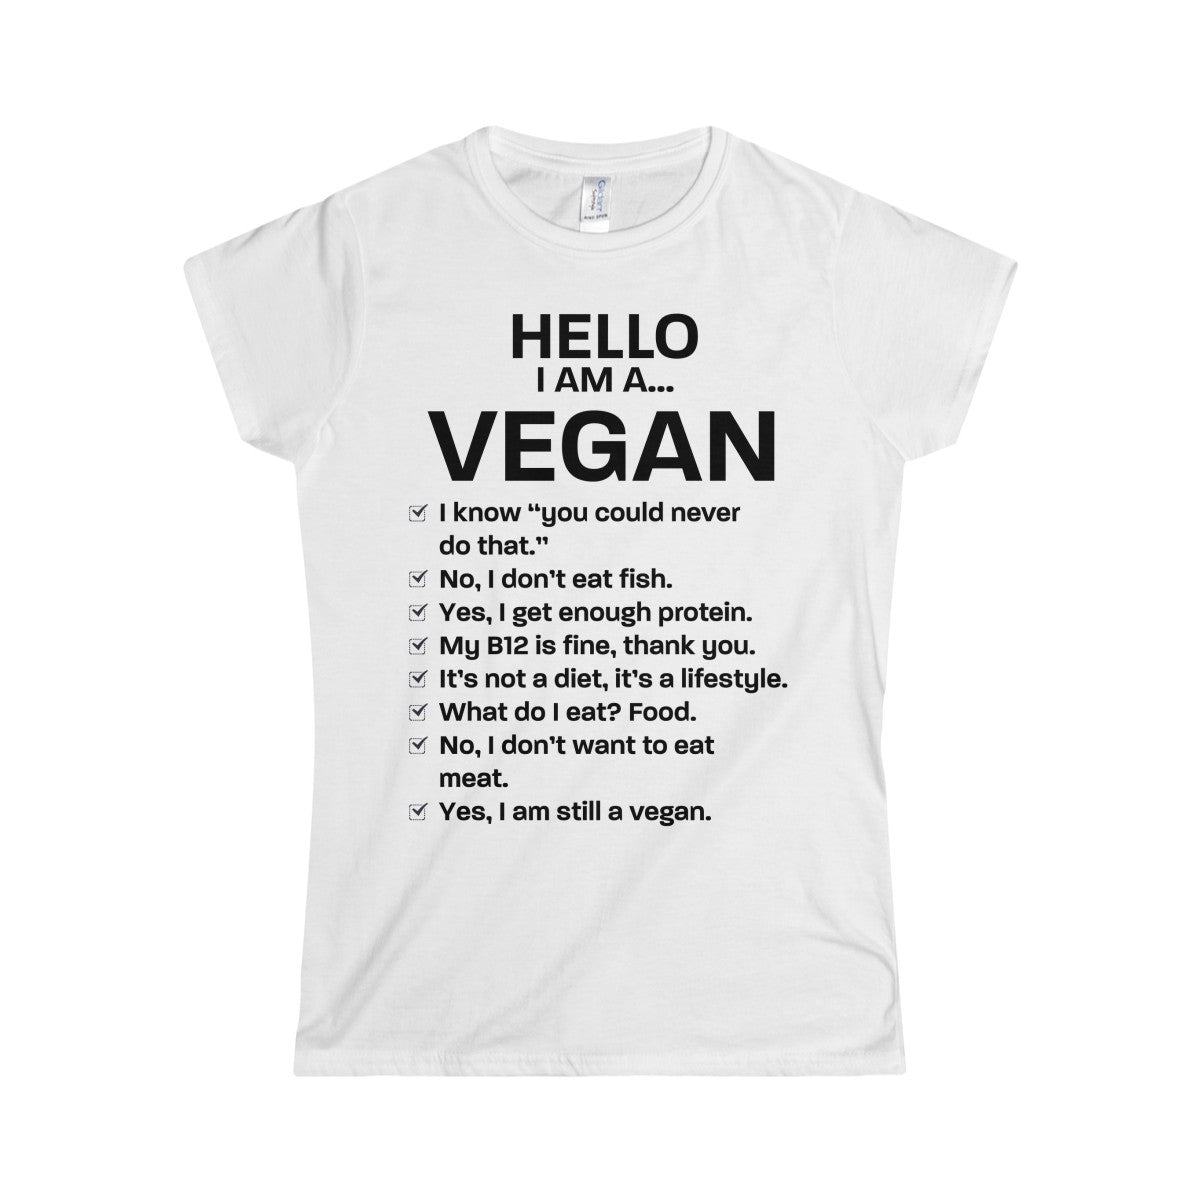 Hello, I am a VEGAN - Slim Fit T-Shirt - My Vegan Menu